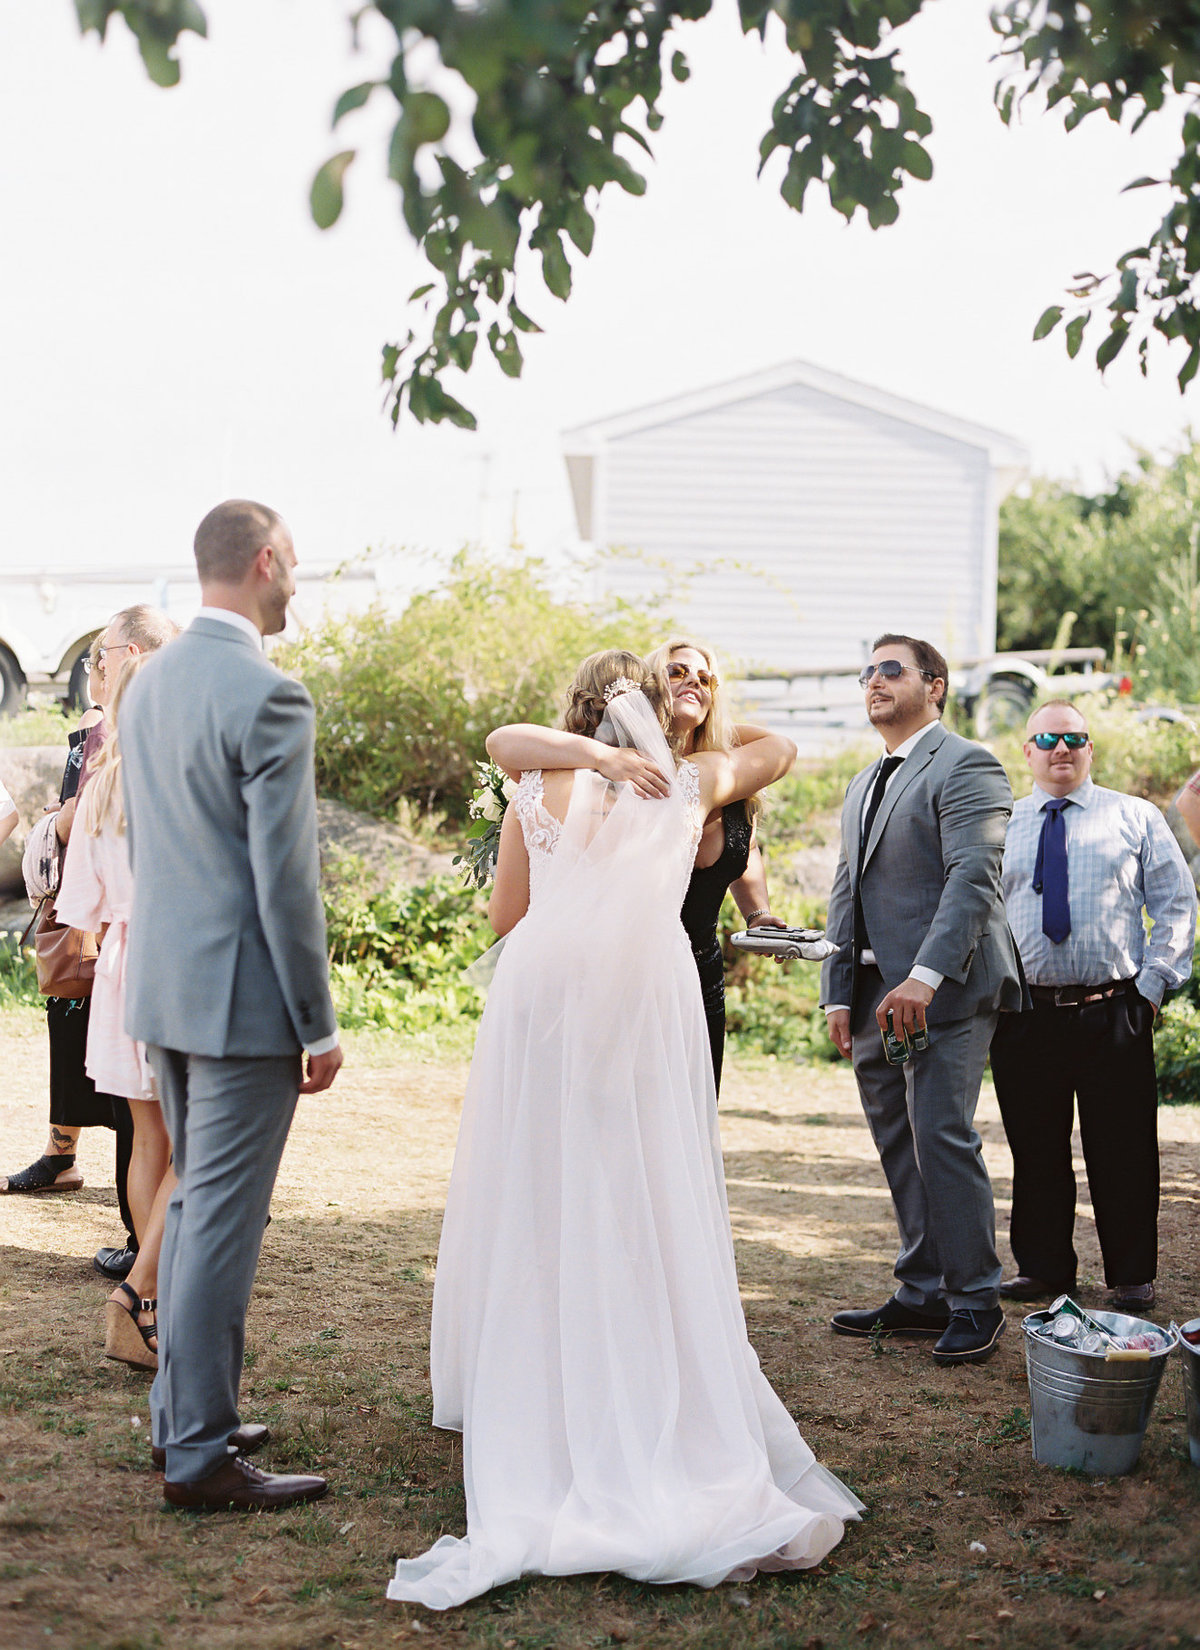 Jacqueline Anne Photography - A+A - Shining Waters Wedding-428